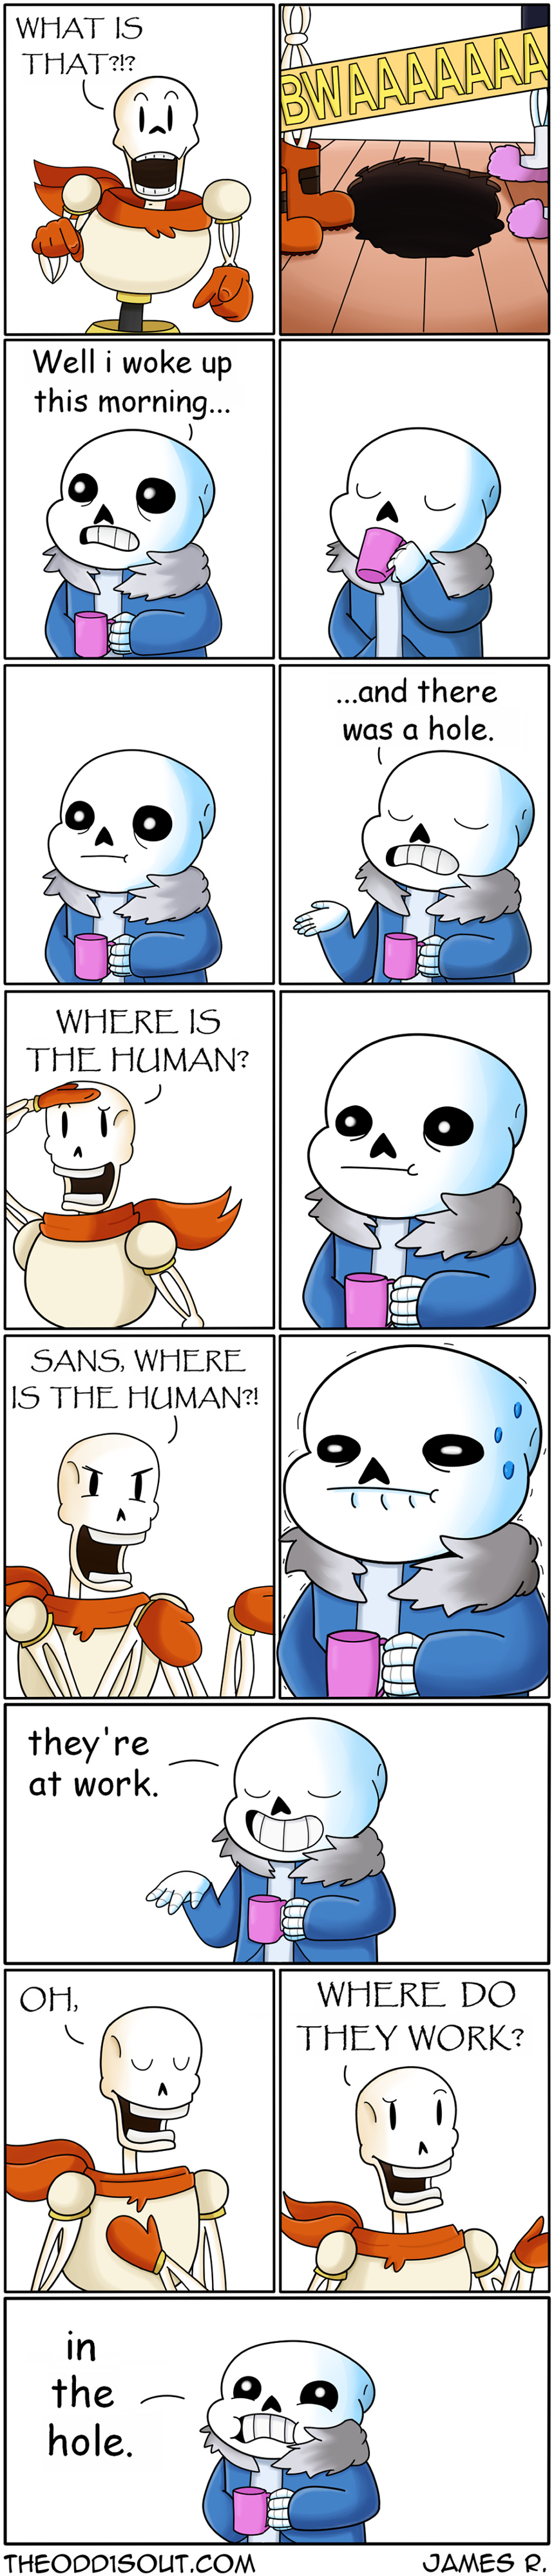 Papyrus and Sans looking for human | Undertale | Pinterest